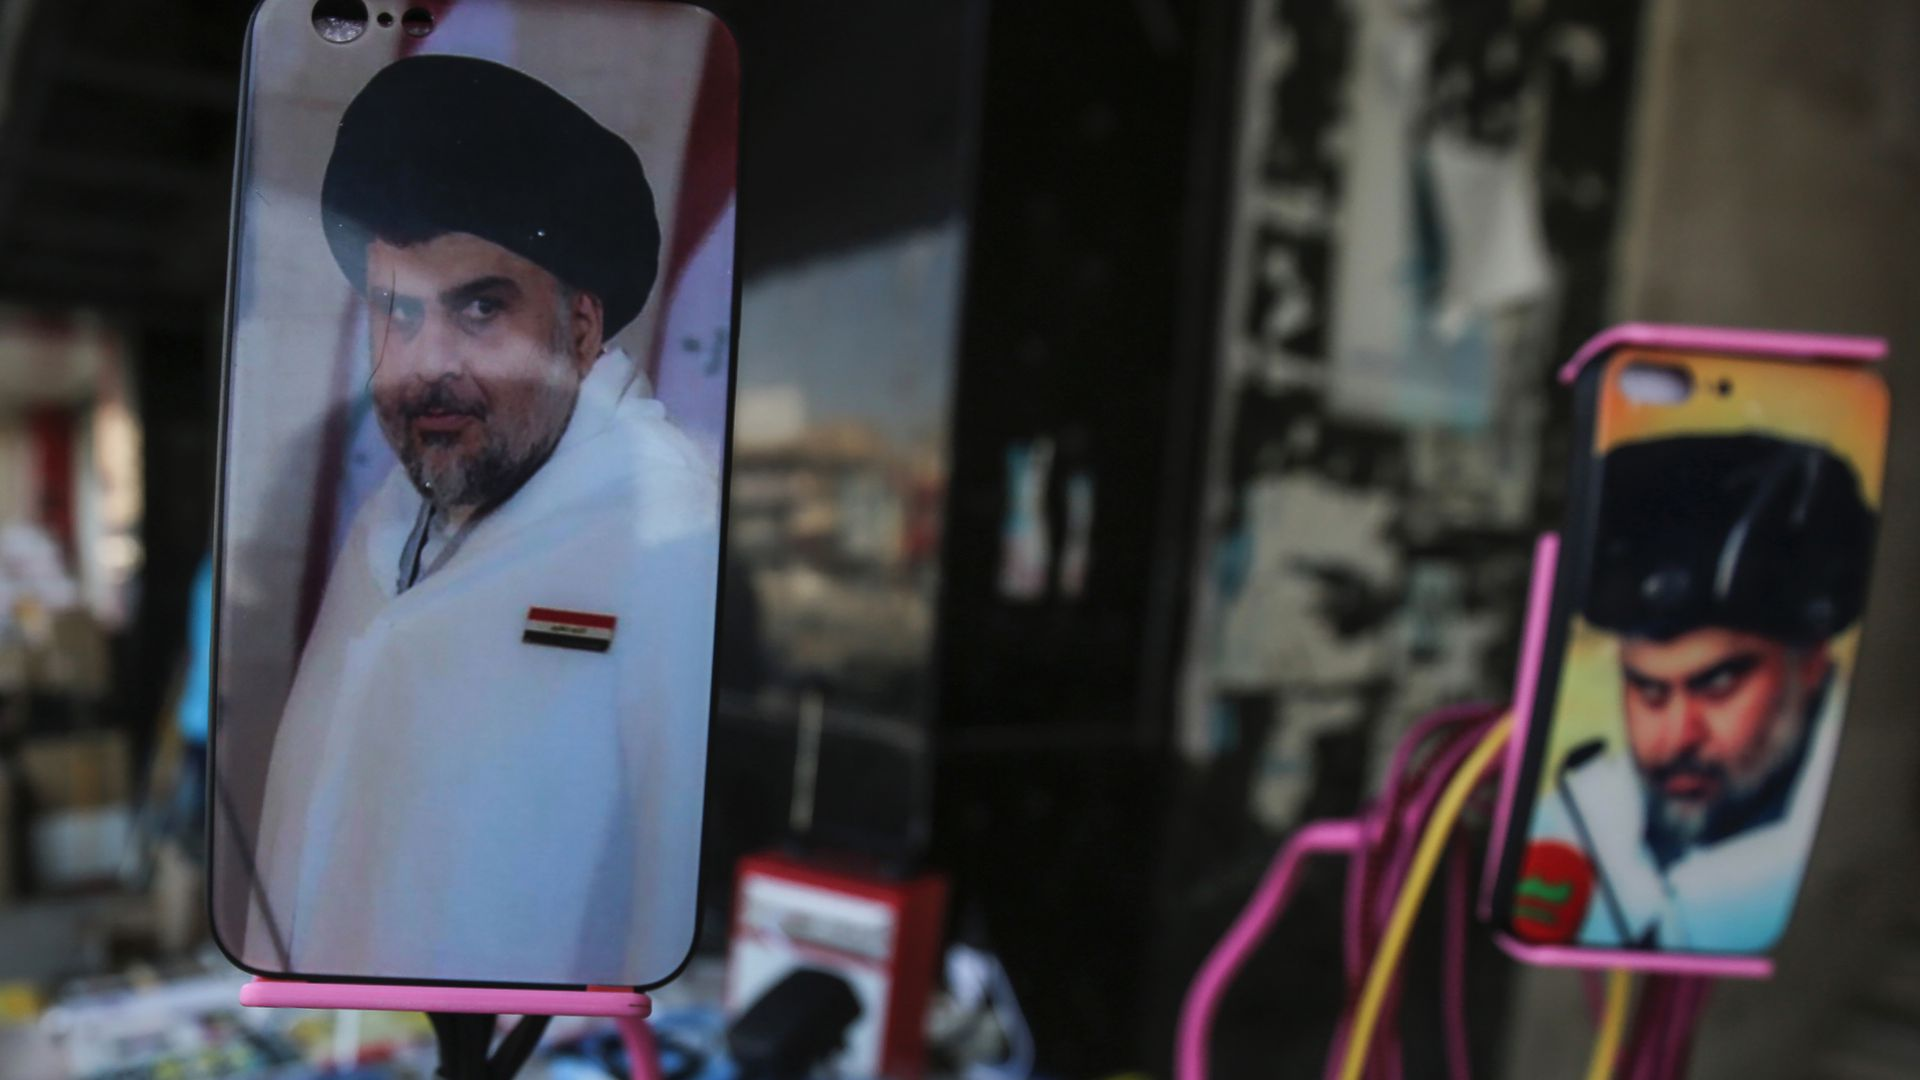 Muqtada al-Sadr on cell phone covers.